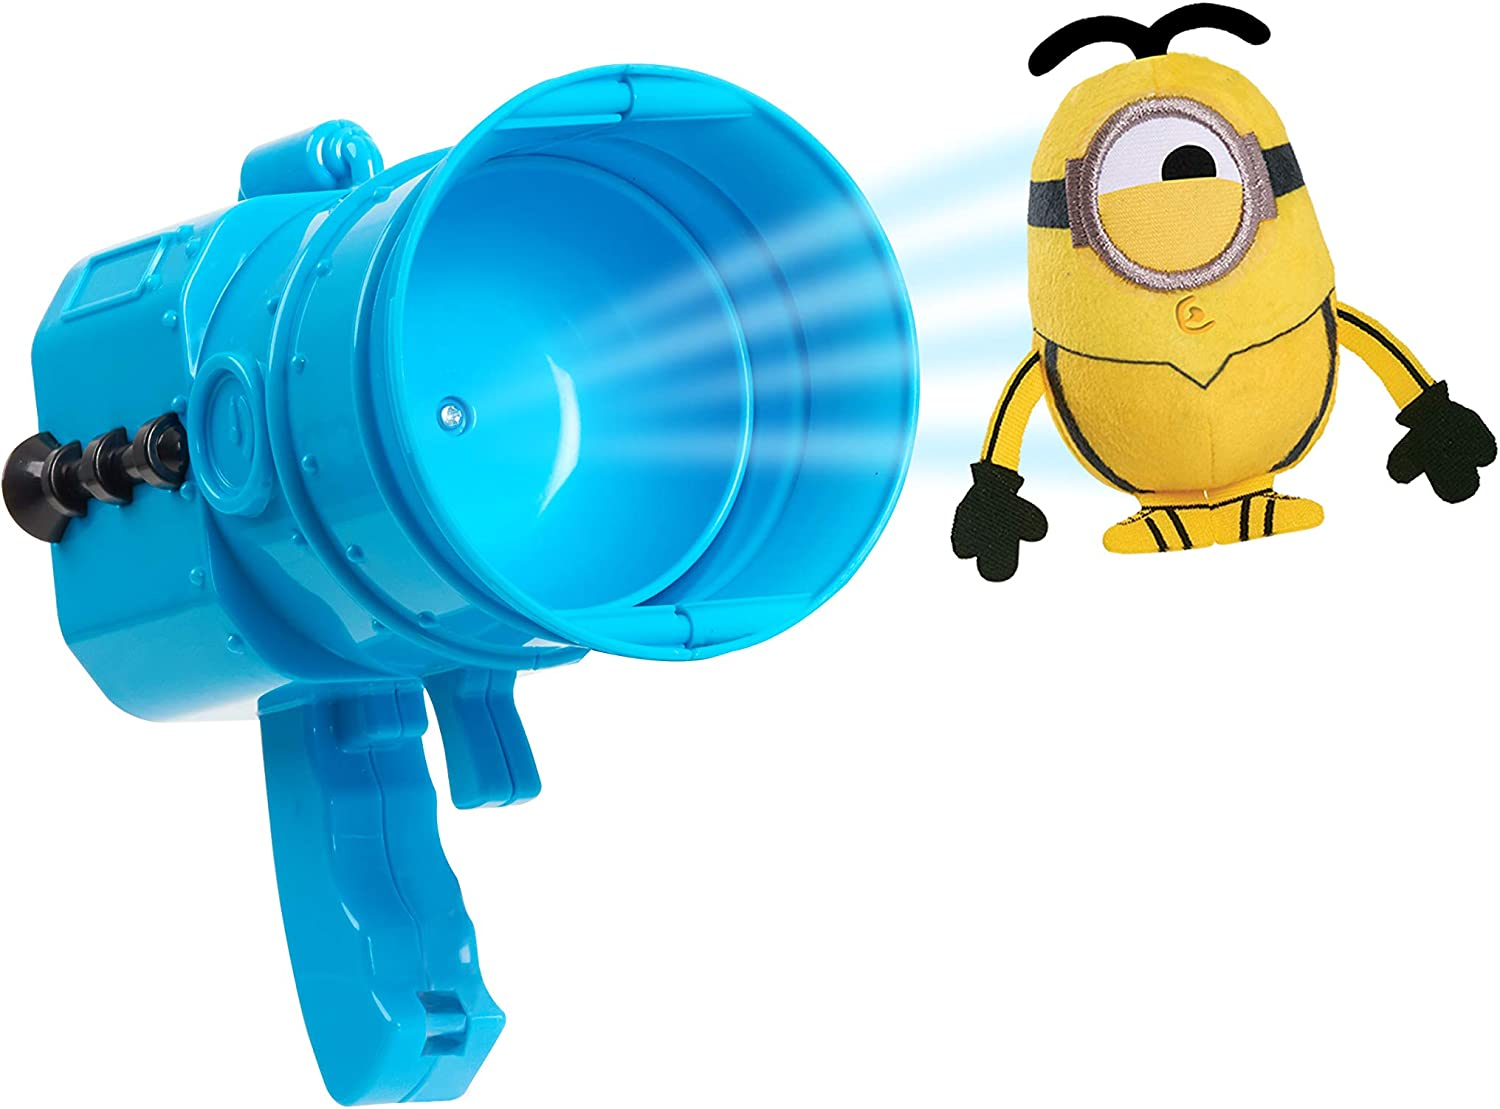 Spielzeug Minions 2 The Rise Of Gru Tiny Toot Attack Fart Firing Blaster Role Play Toy Triadecont Com Br